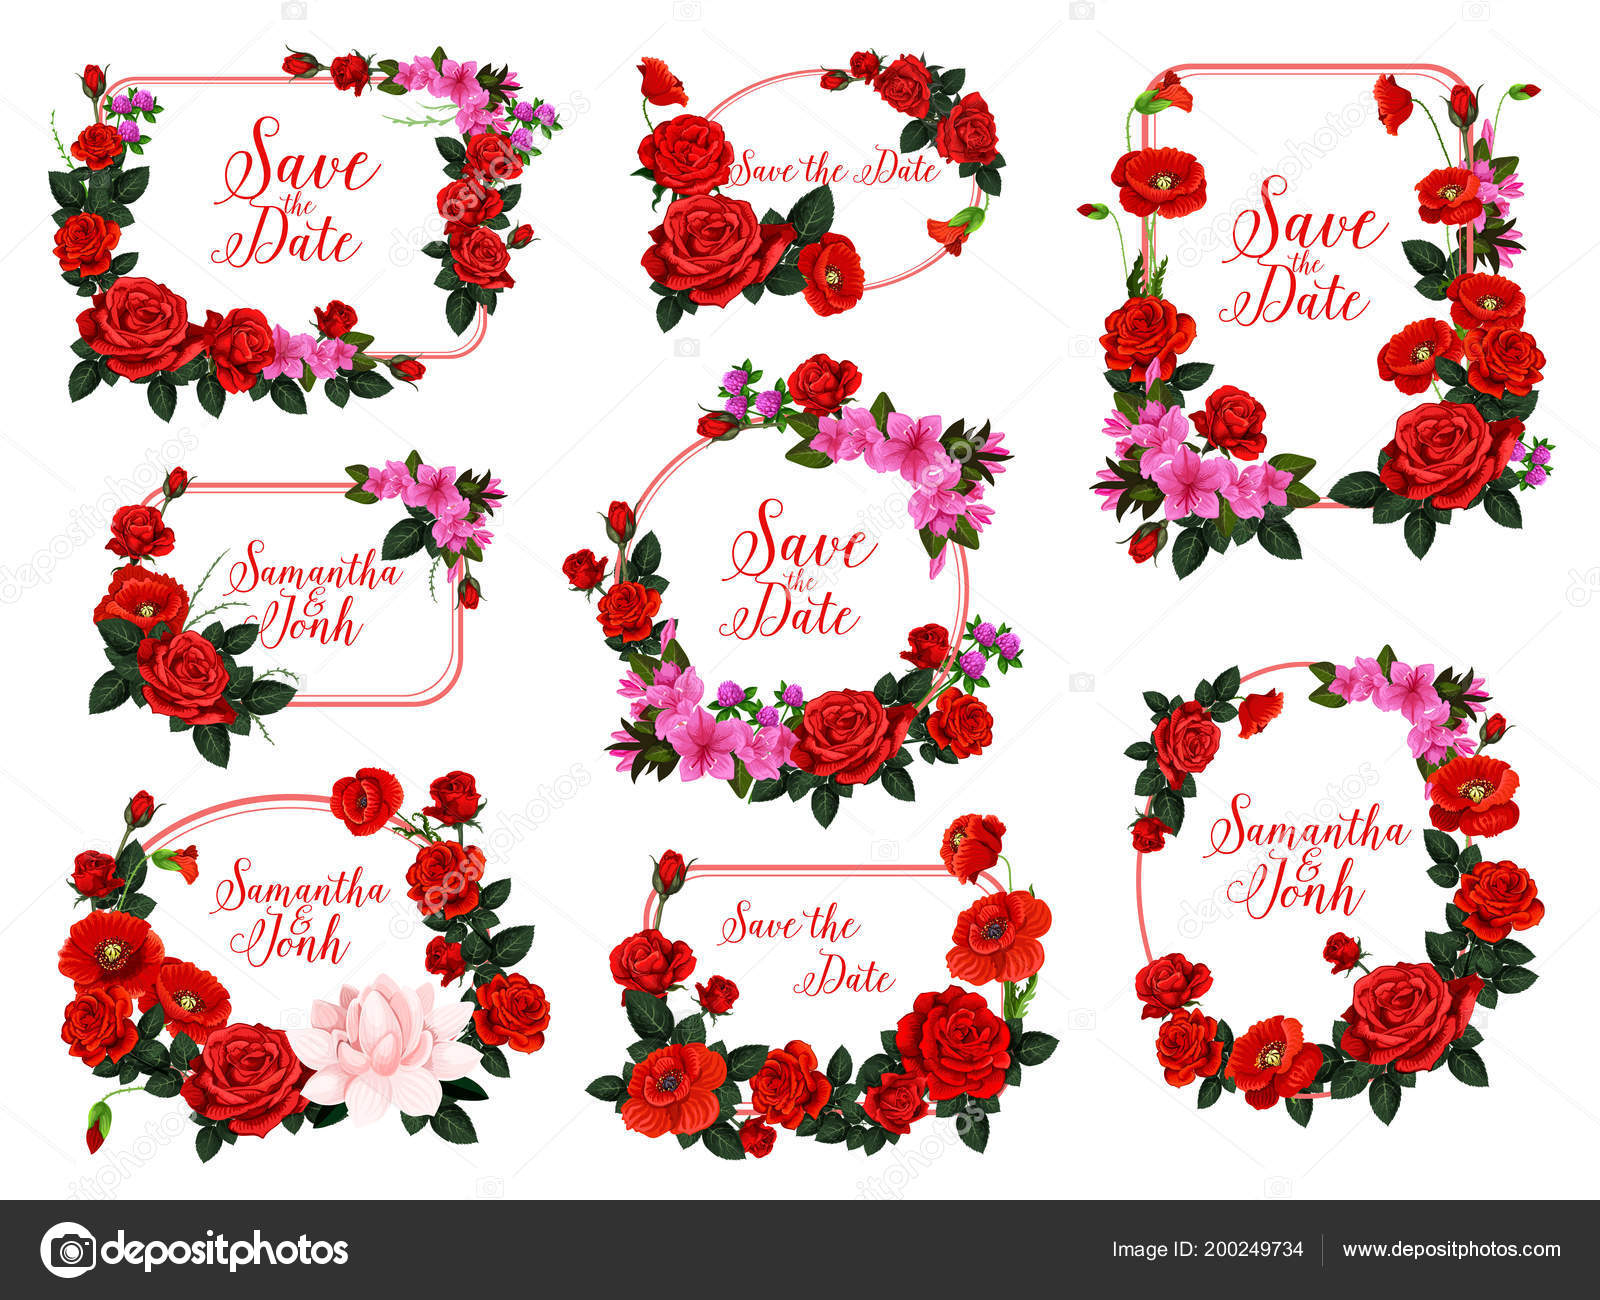 Save the Date flower frame for wedding invitation — Stock Vector ...